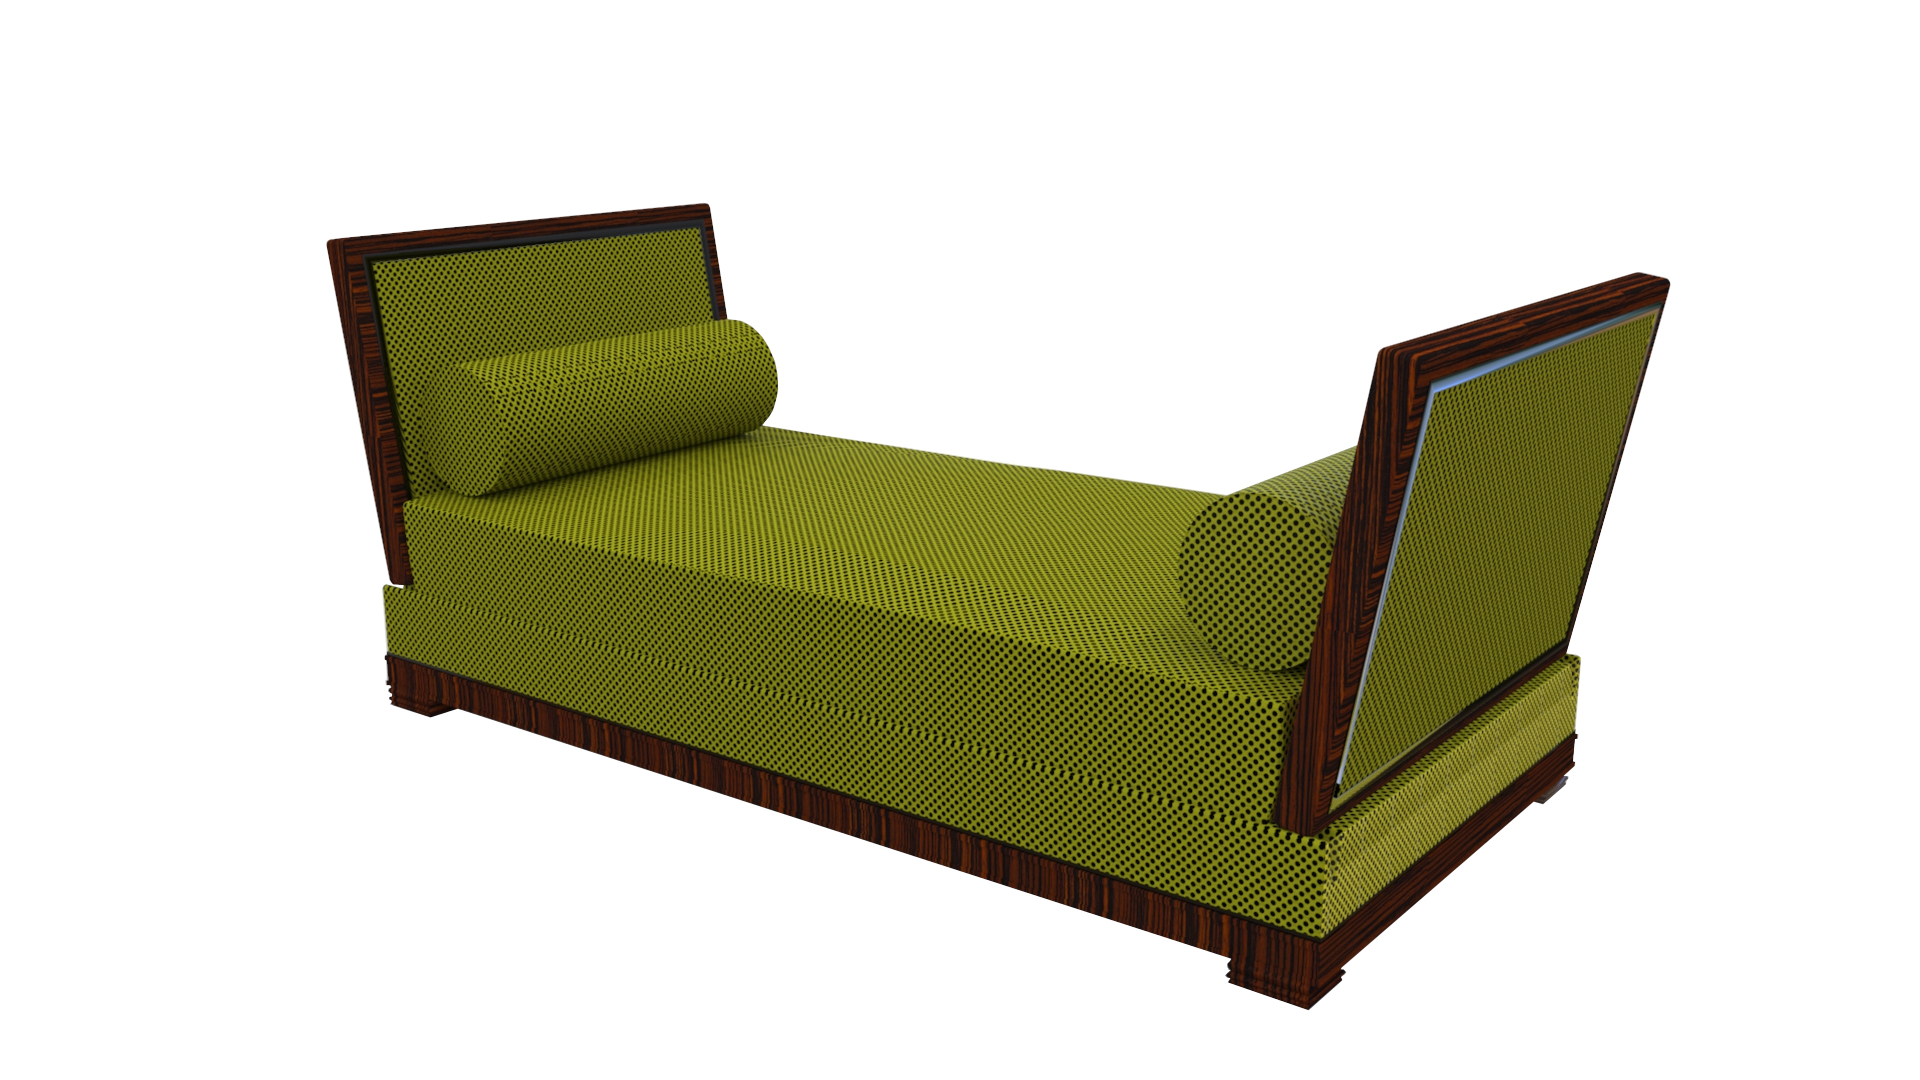 art deco design zweisitzer sofa original antike m bel. Black Bedroom Furniture Sets. Home Design Ideas